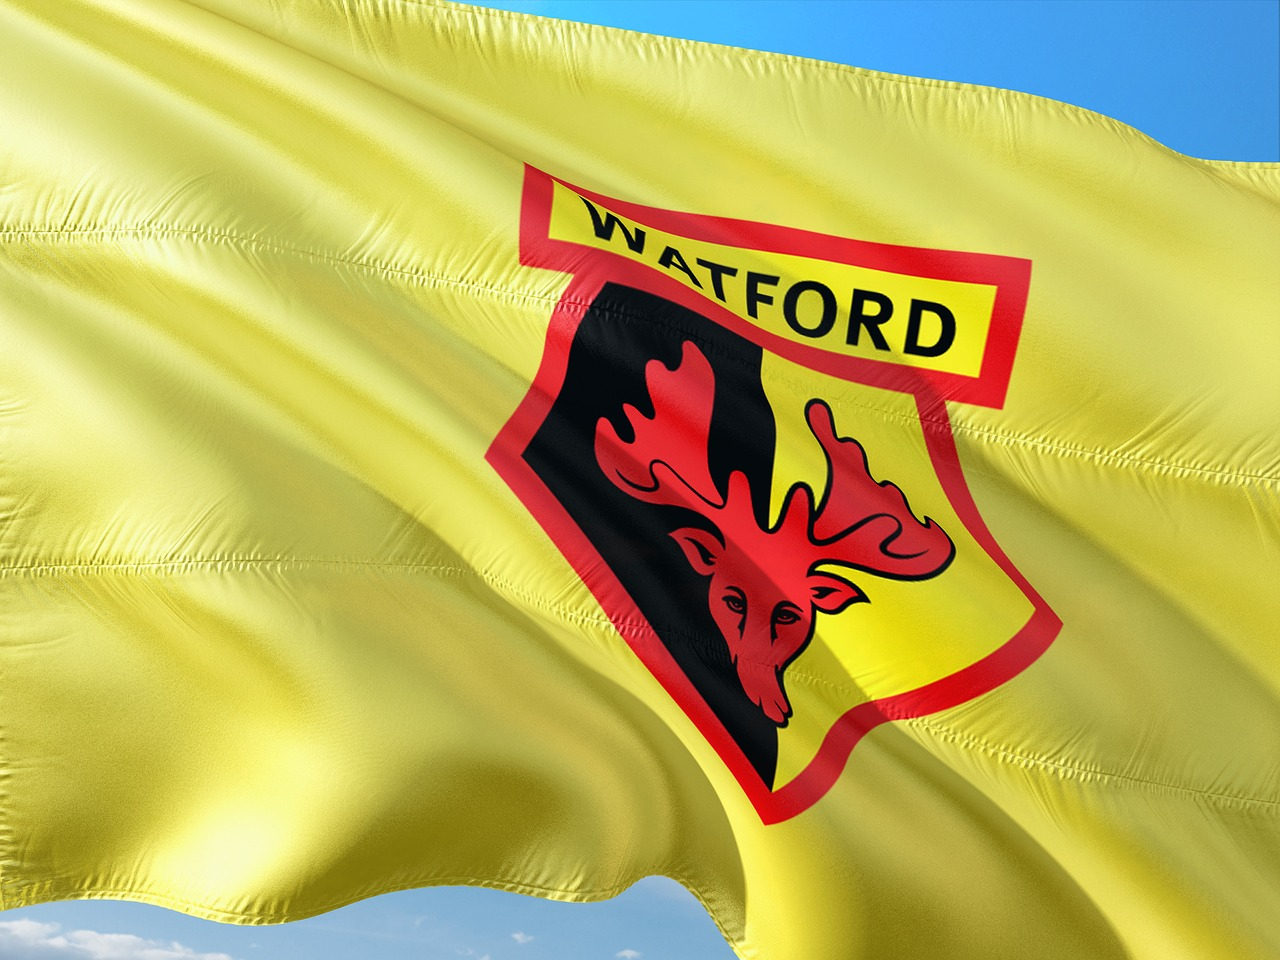 Watford FC Sports Dogecoin Logo in Sponsorship Deal Worth Almost $1M